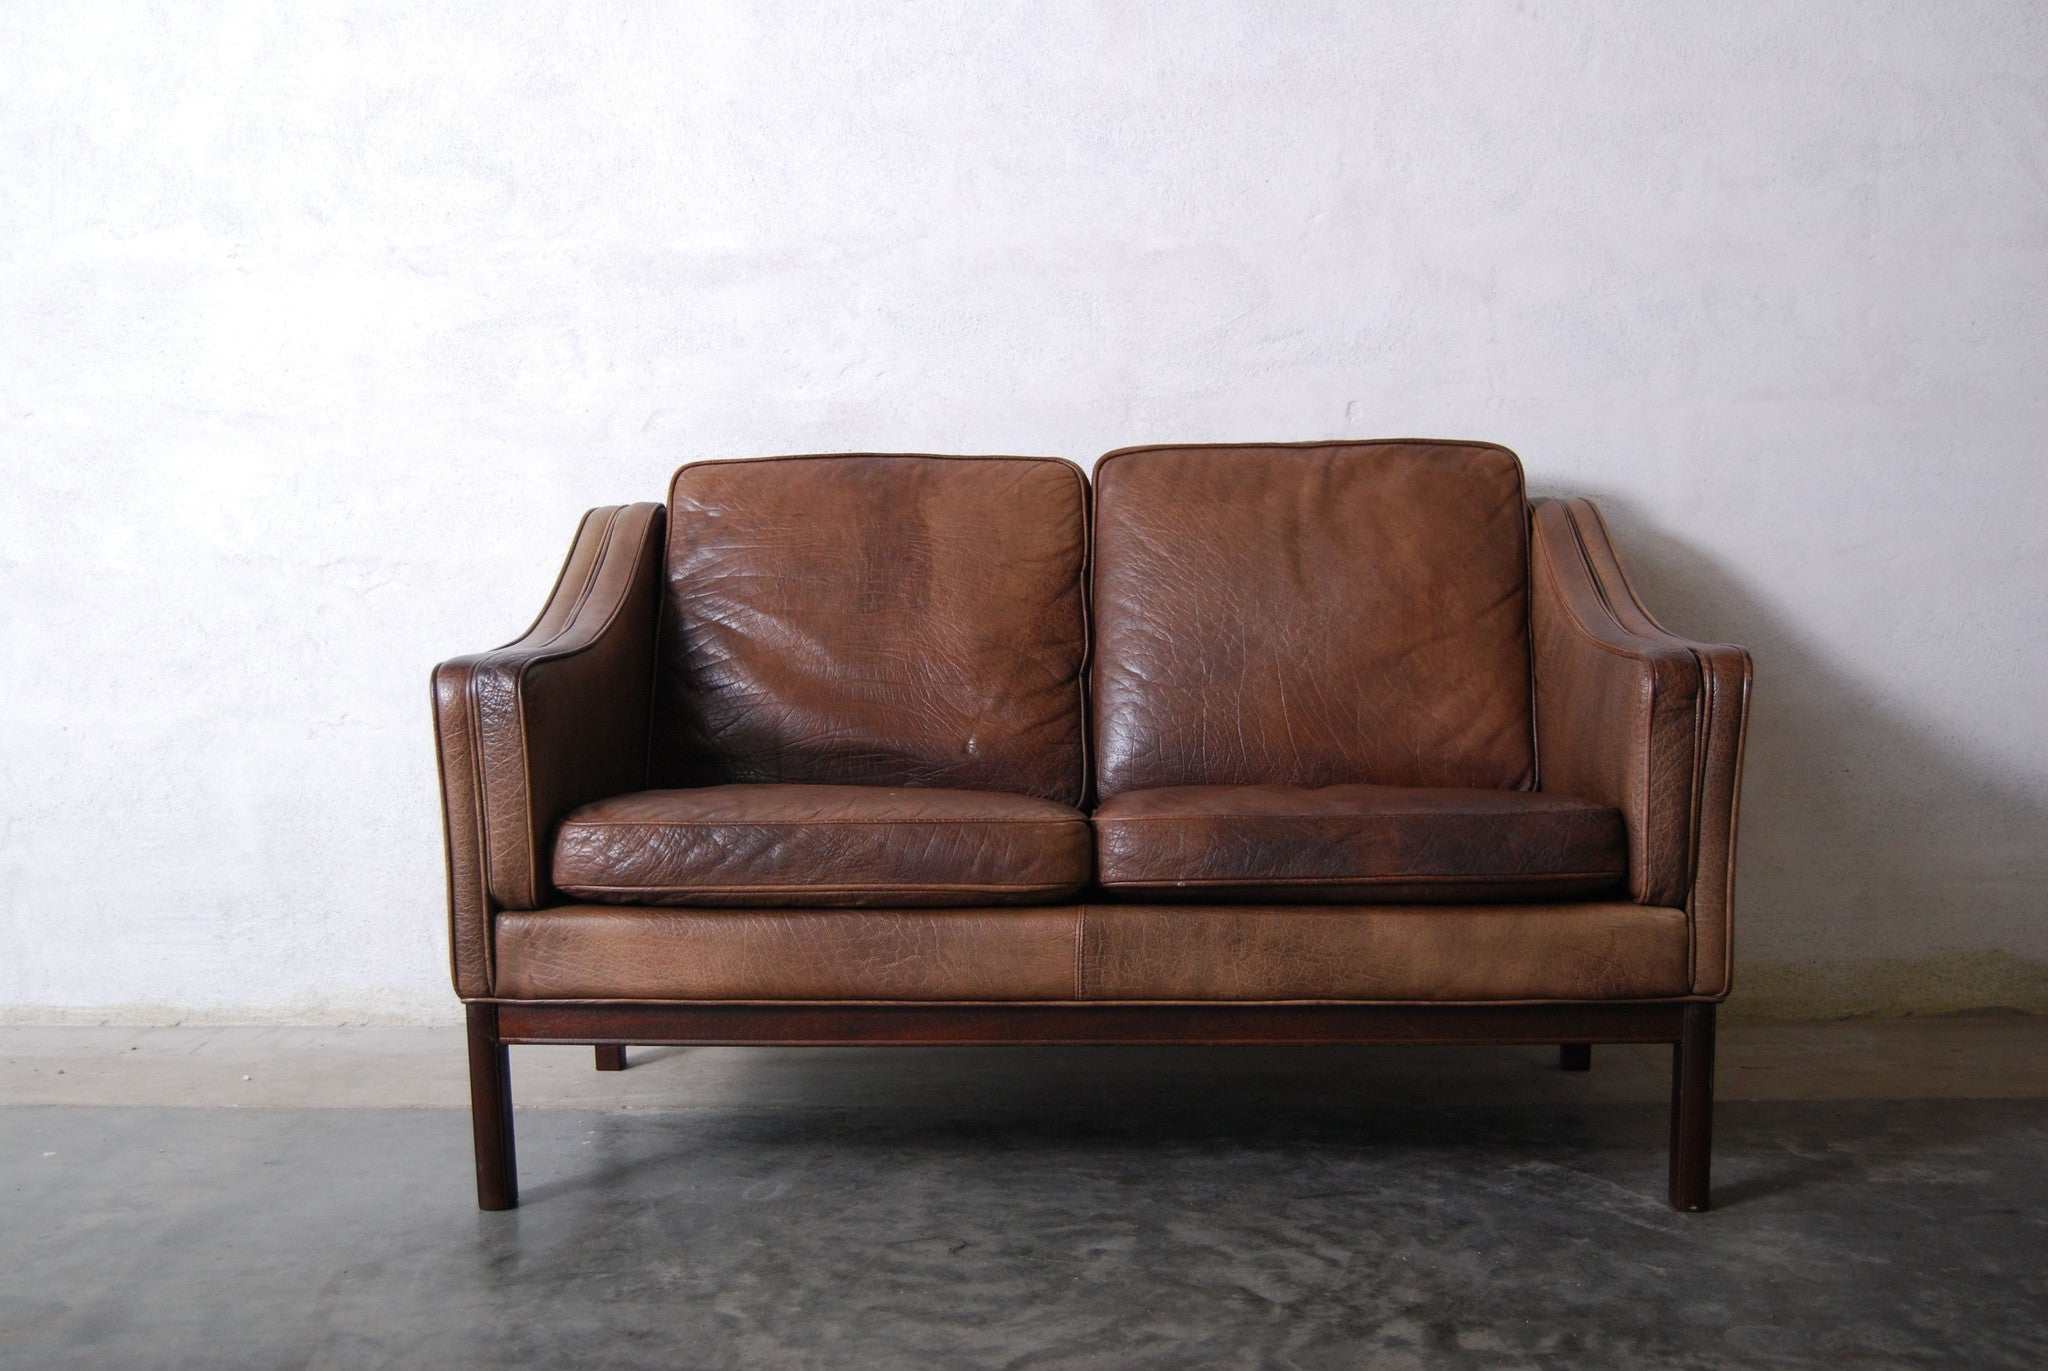 Two seat sofa by Vatne Mbler